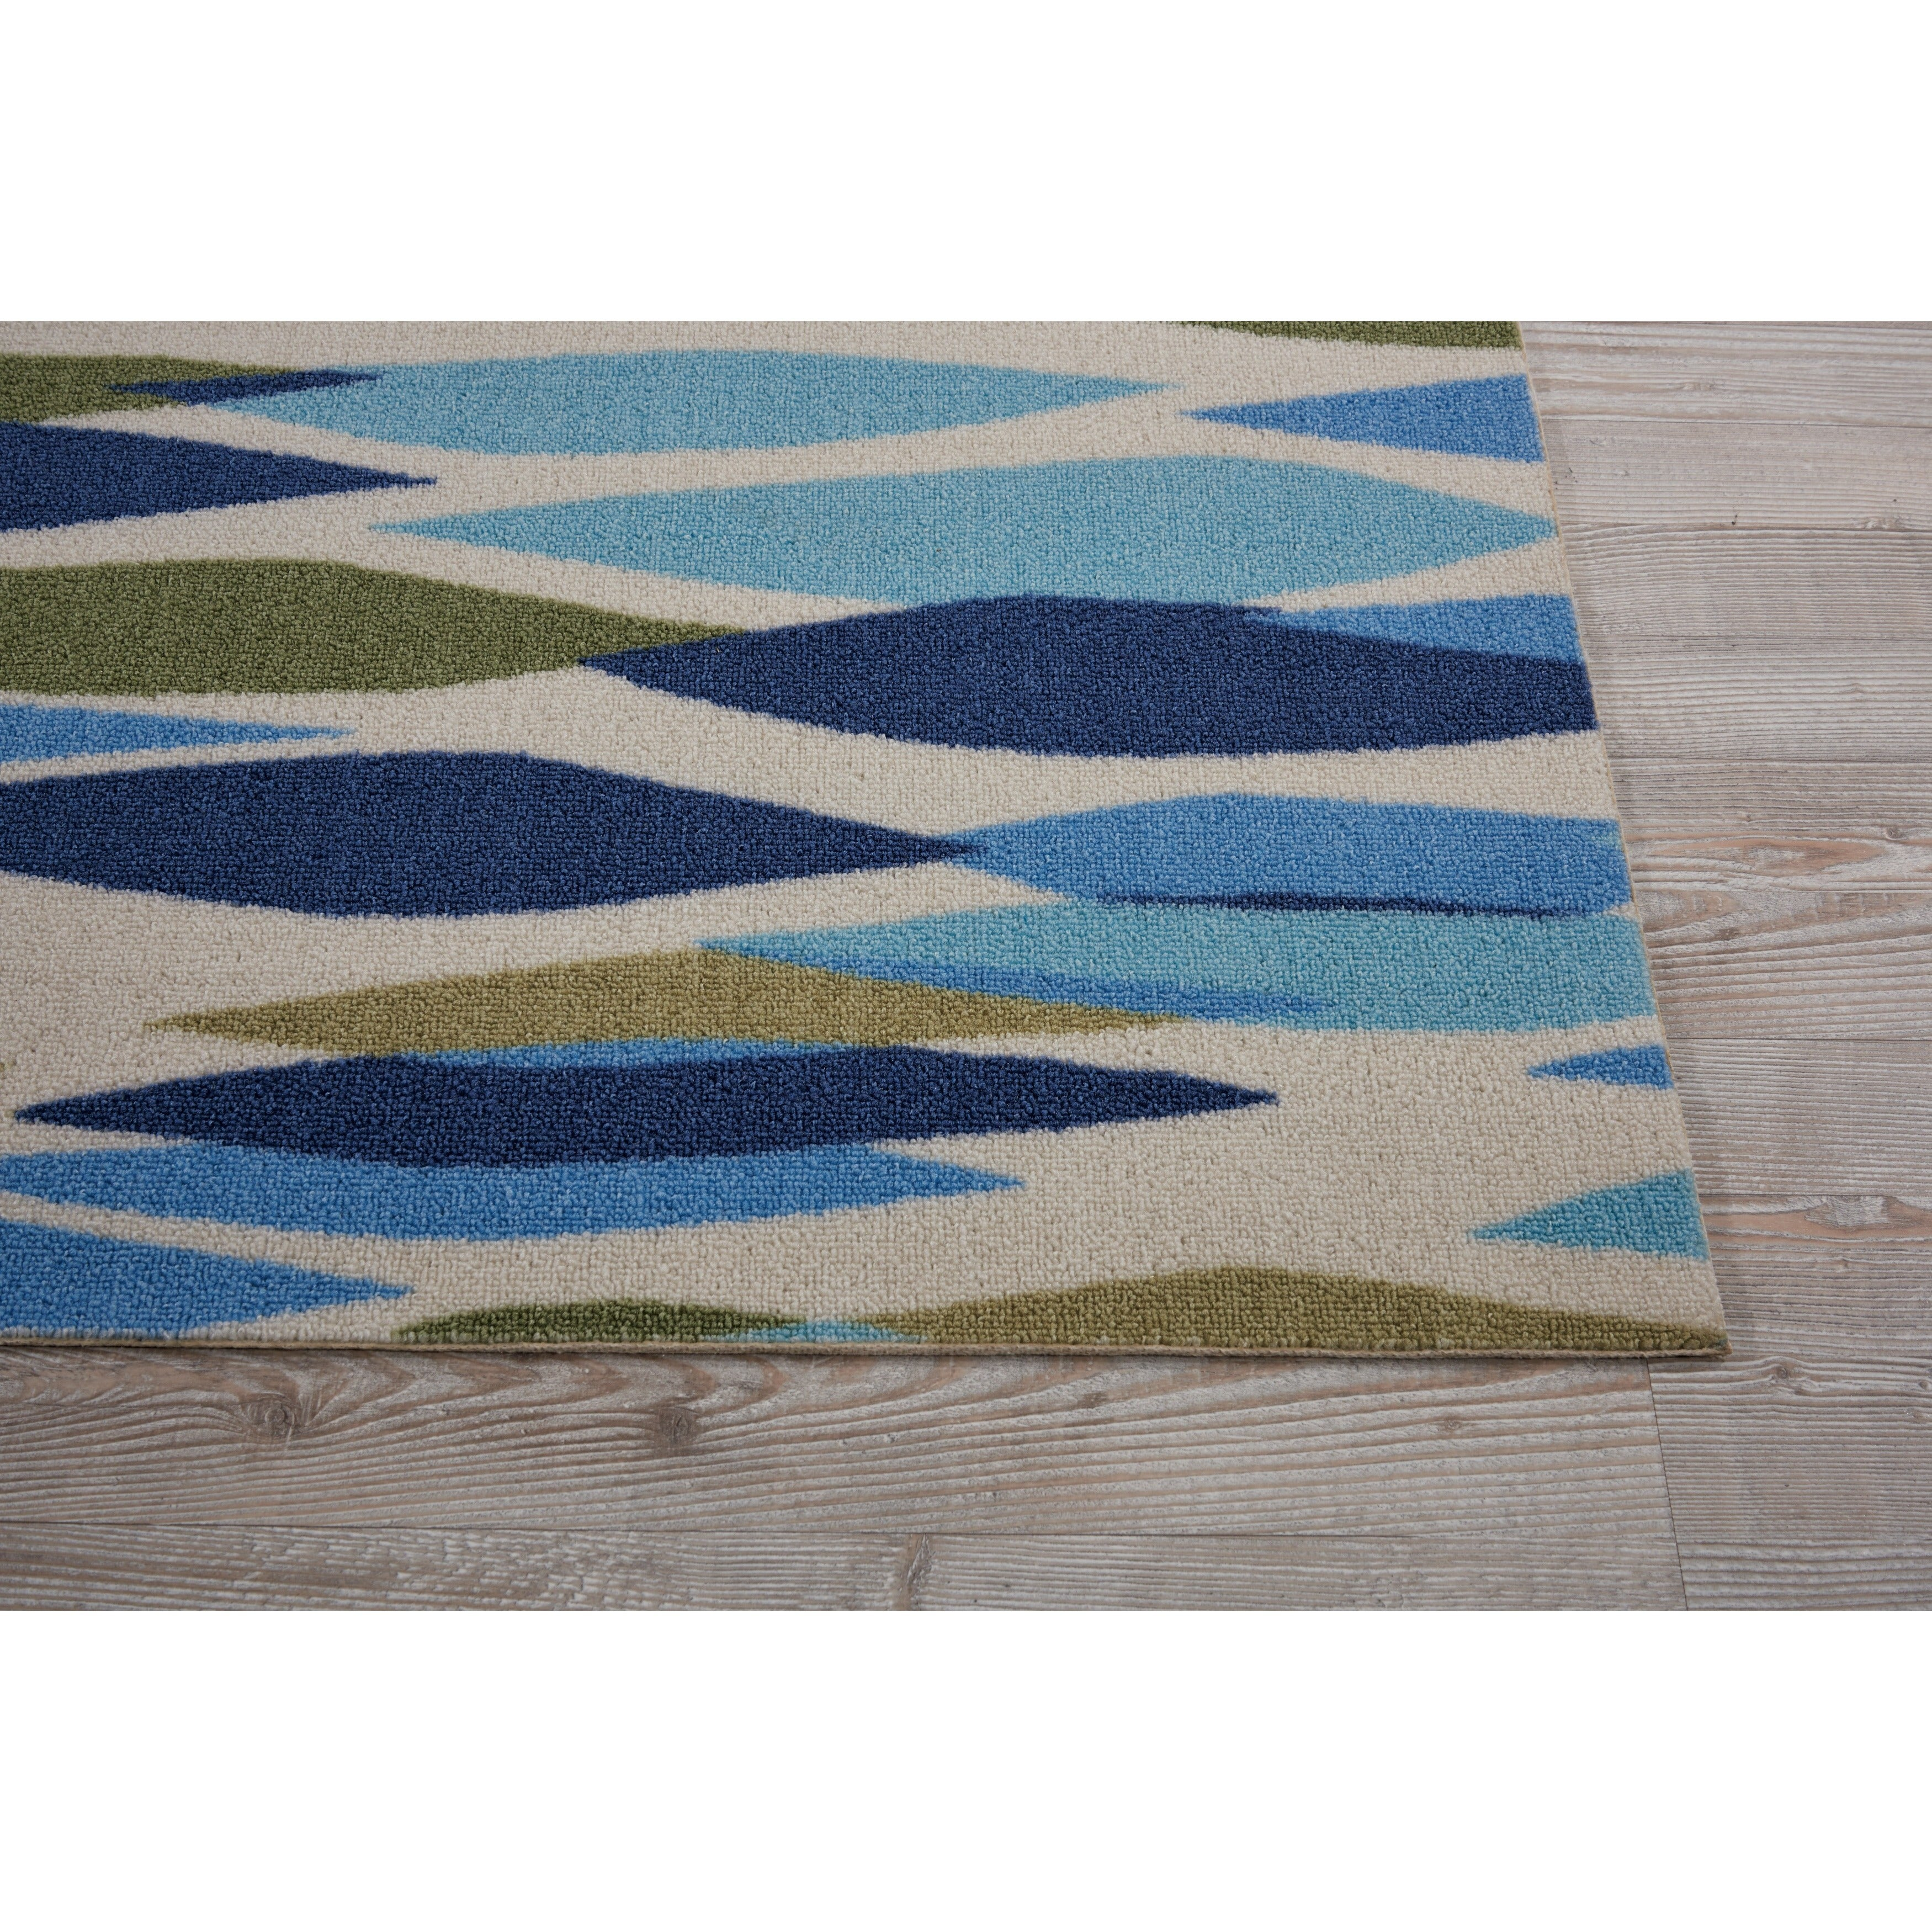 New Waverly Sun N' Shade Bits & Pieces Seaglass Area Rug by Nourison  CH14